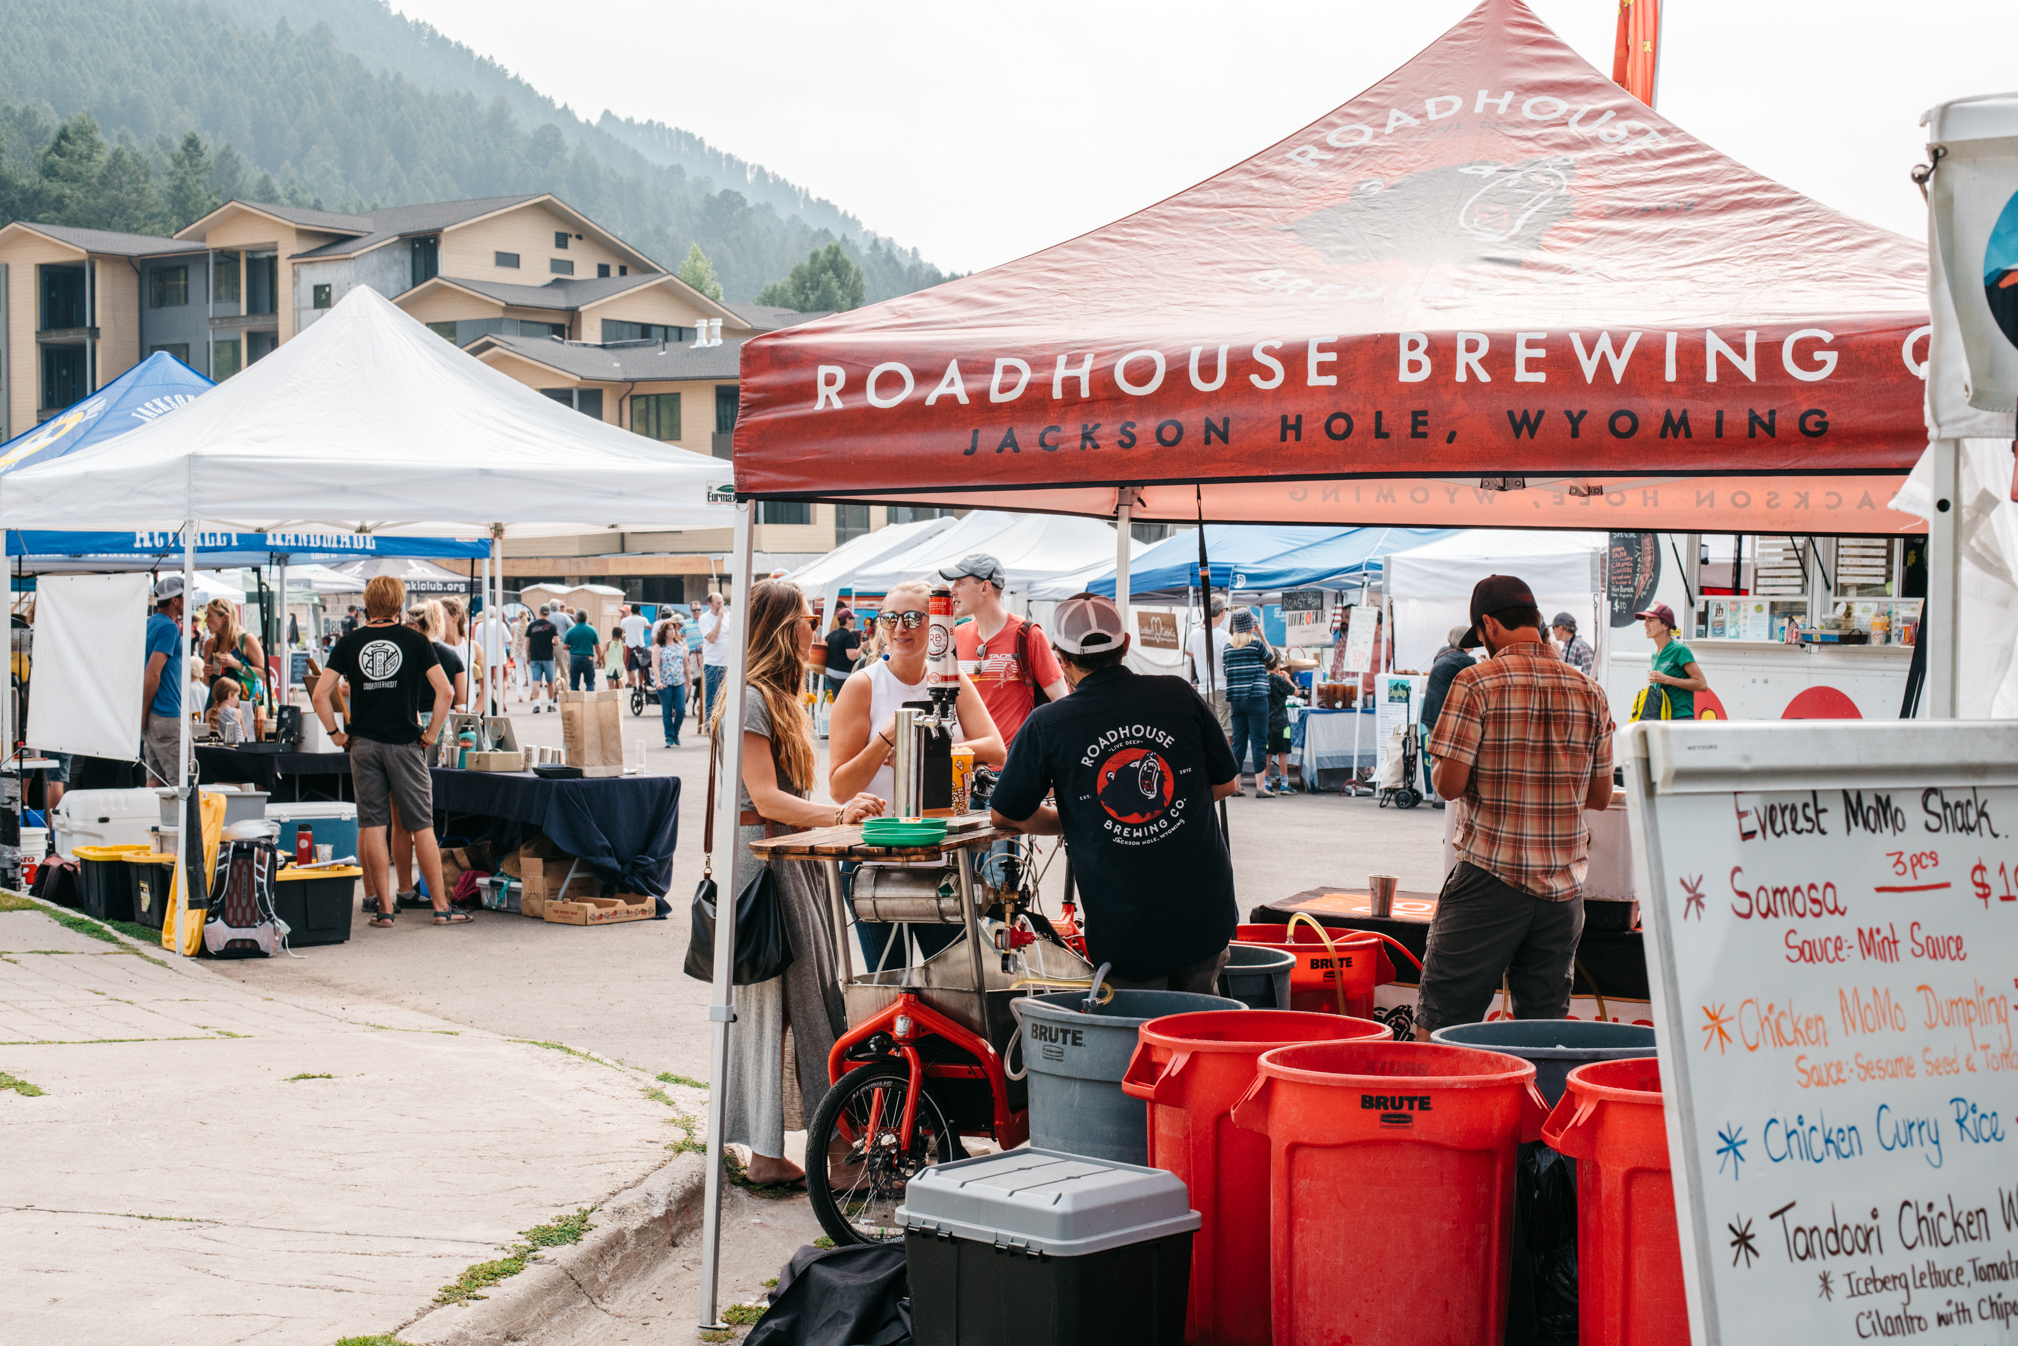 Jackson Hole Wyoming's People's Farmer's Market at the base of Snow King Mountain with beer and food stands